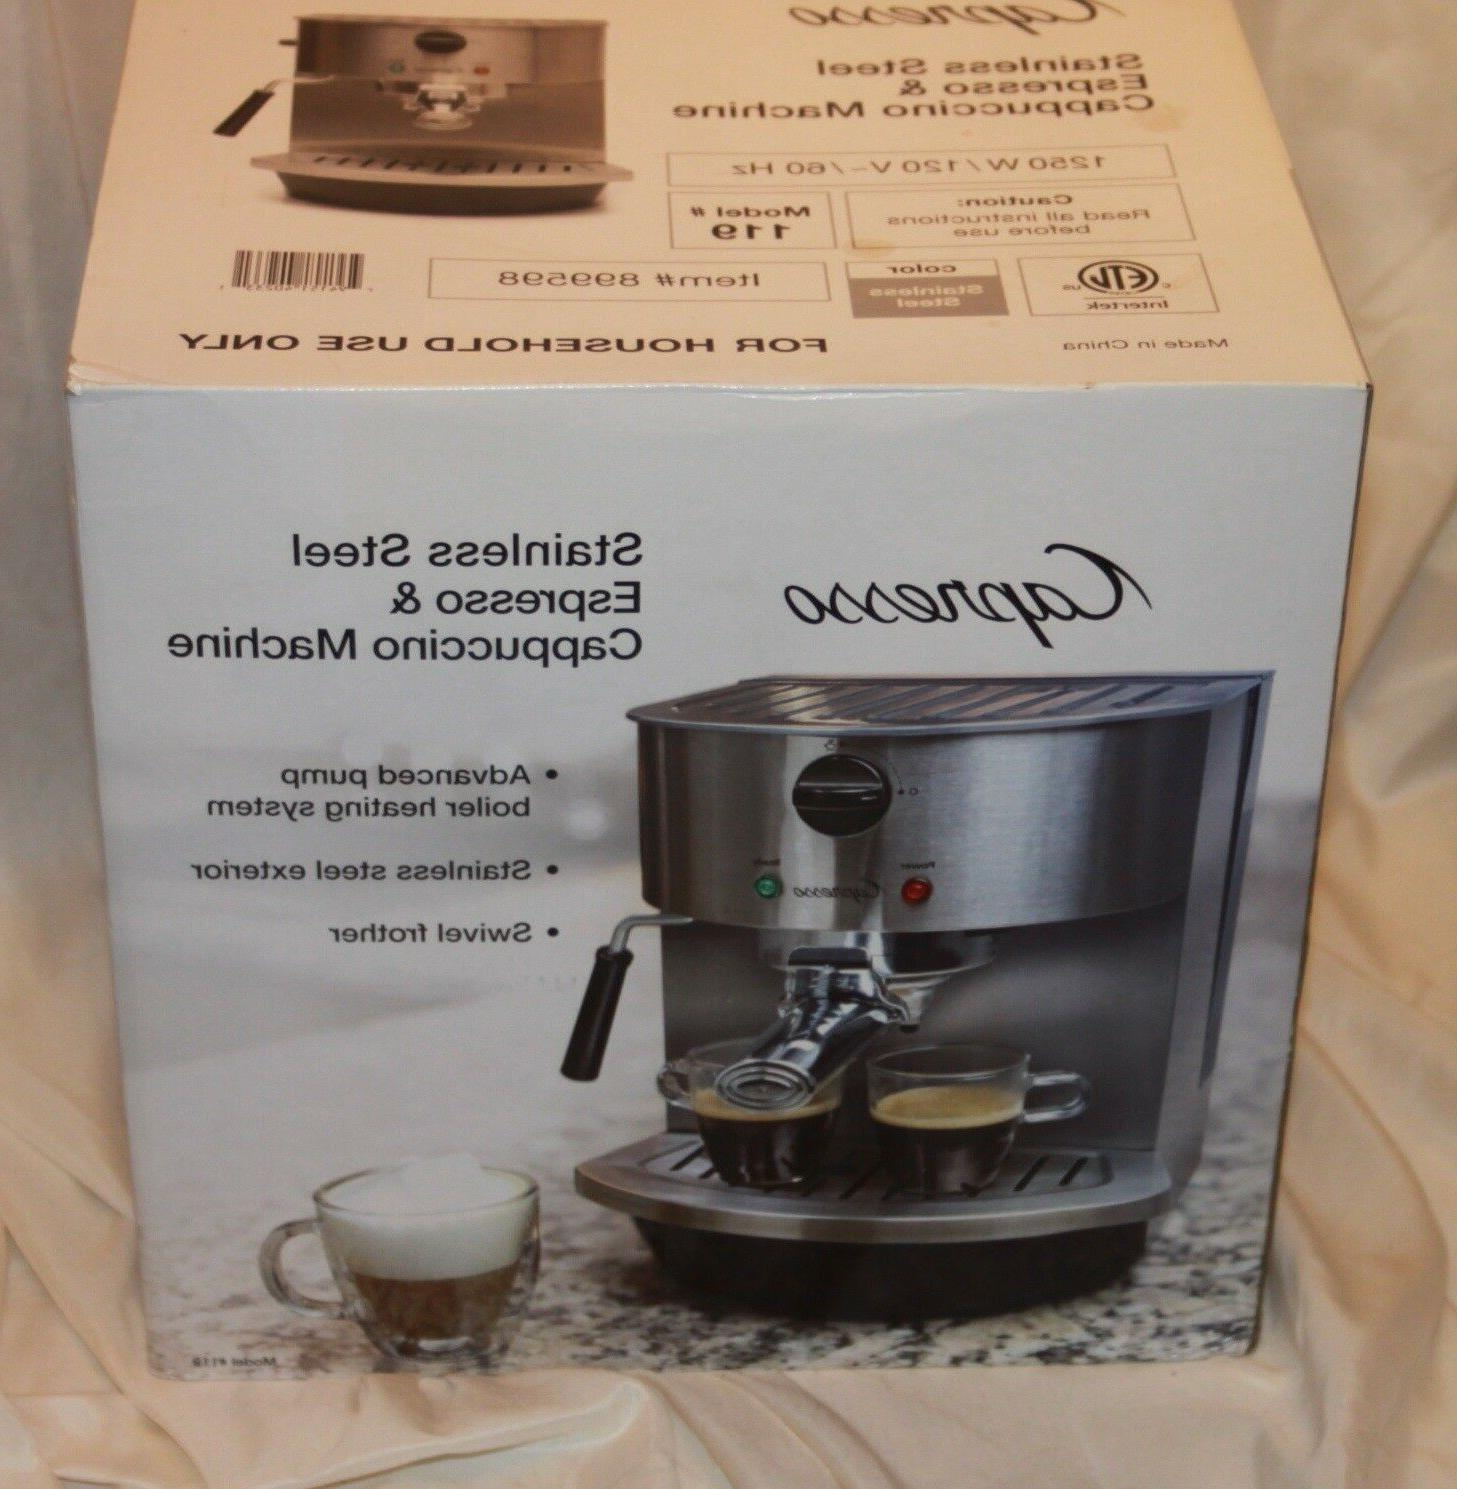 119 stainless steel pump espresso and cappuccino